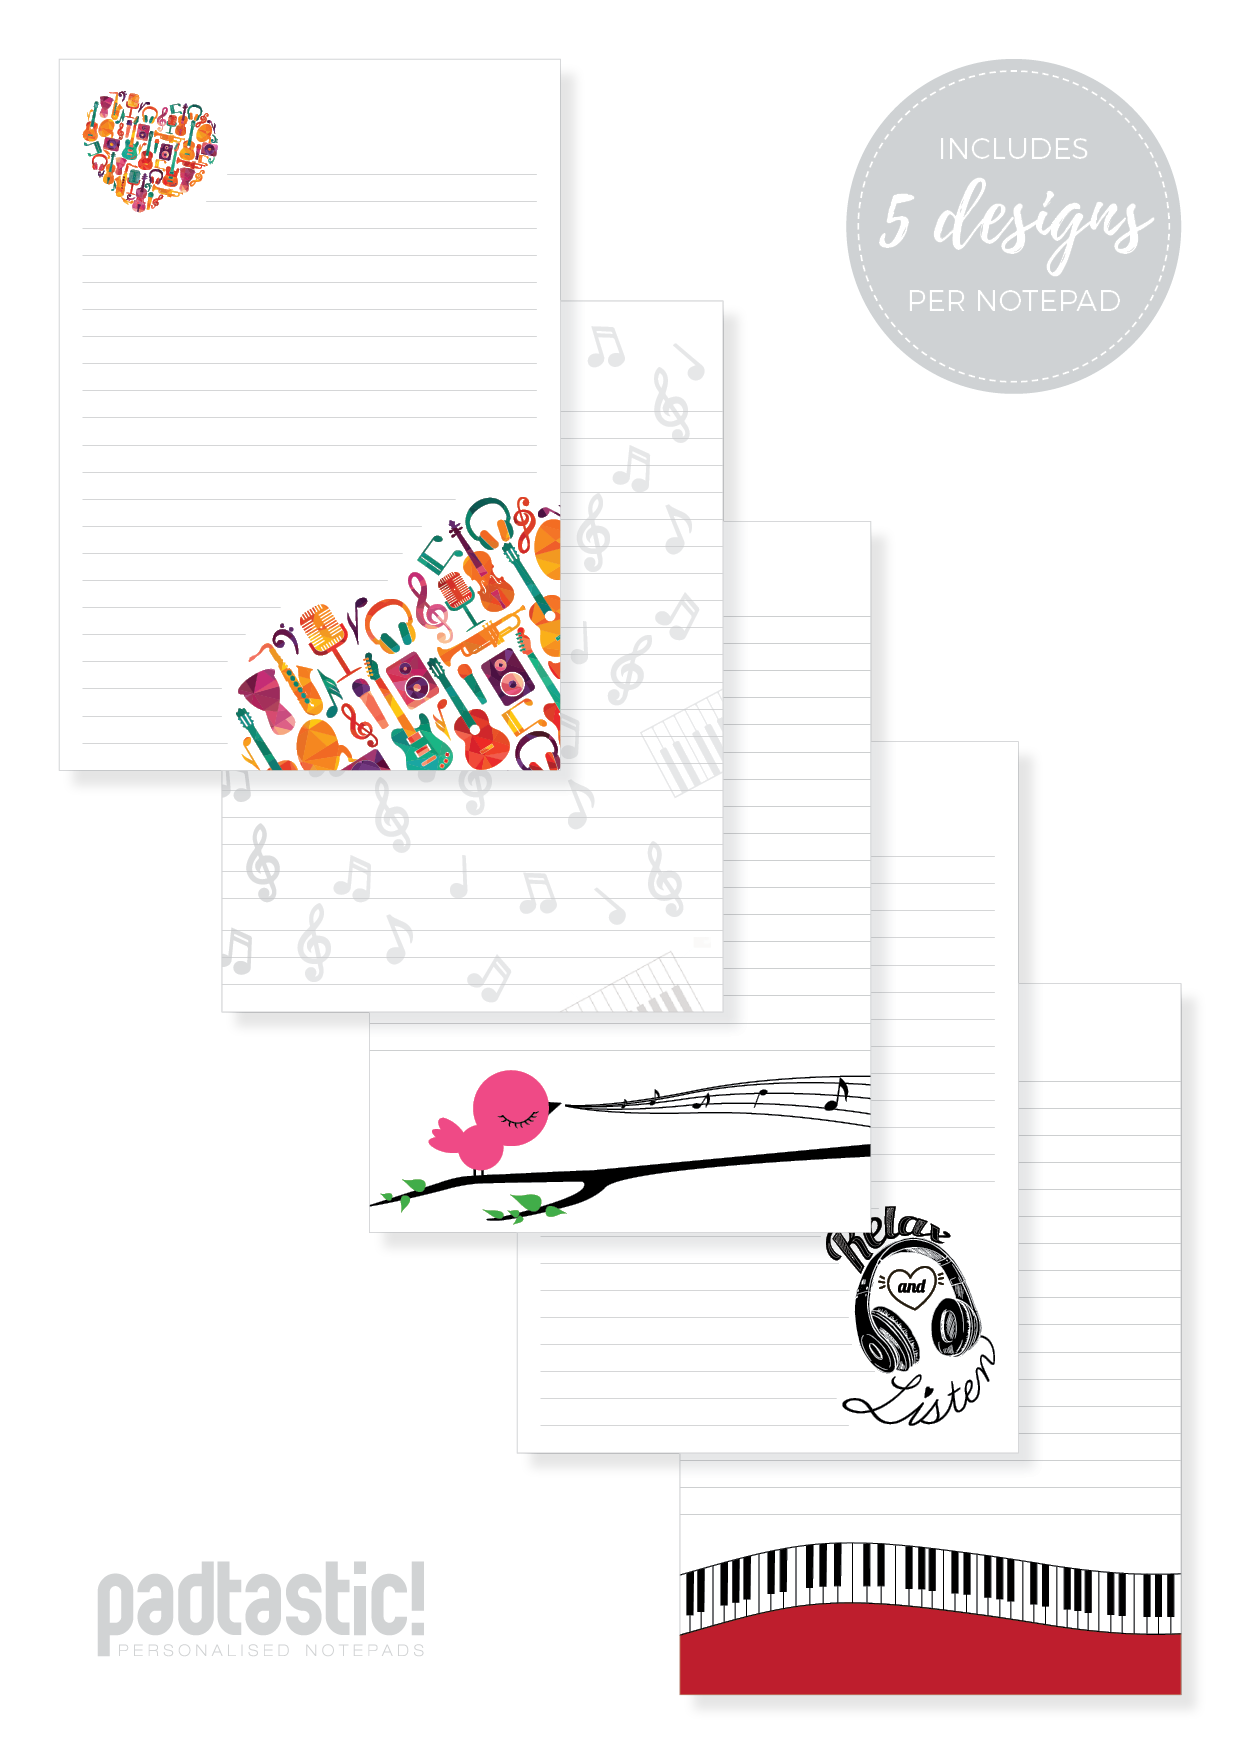 Notepad clipart notepad line. Music mixed design padtastic